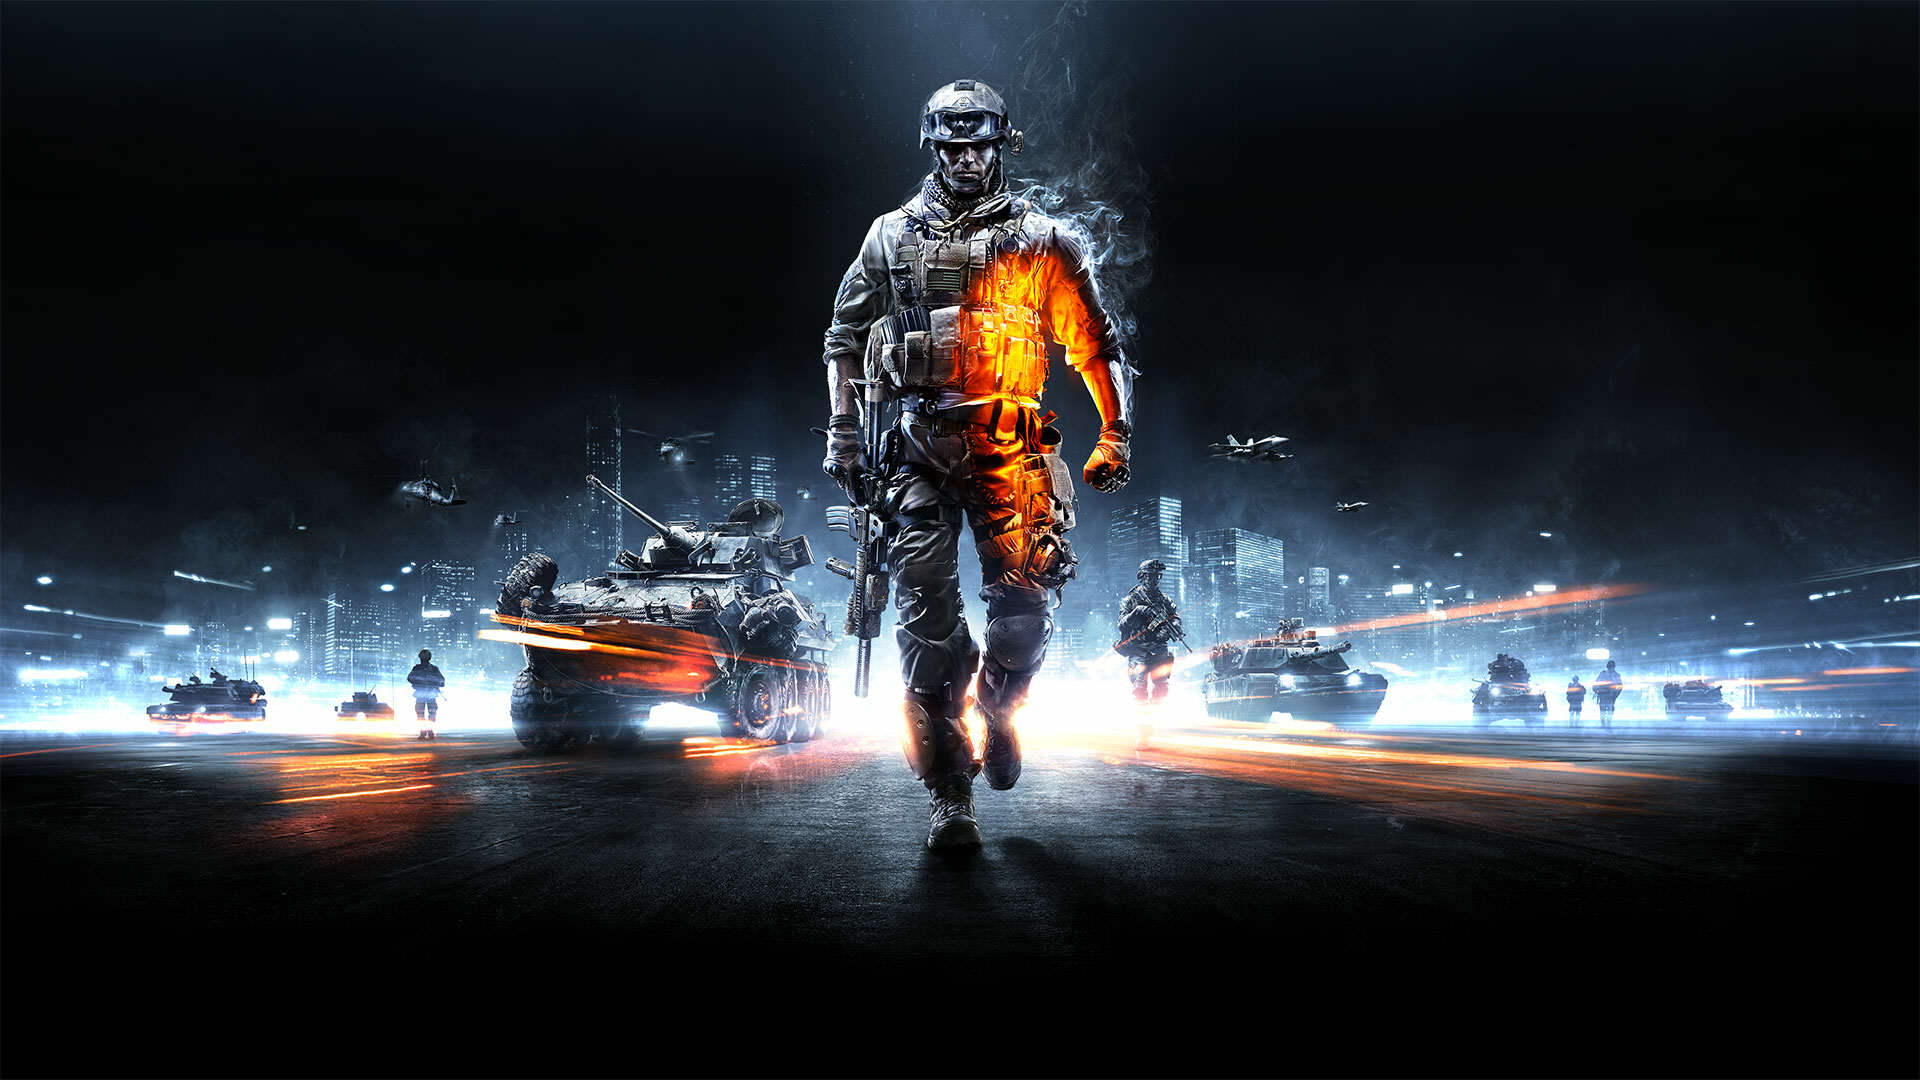 bf3bg 1 Battlefield TV Show In The Works, Heres What We Know